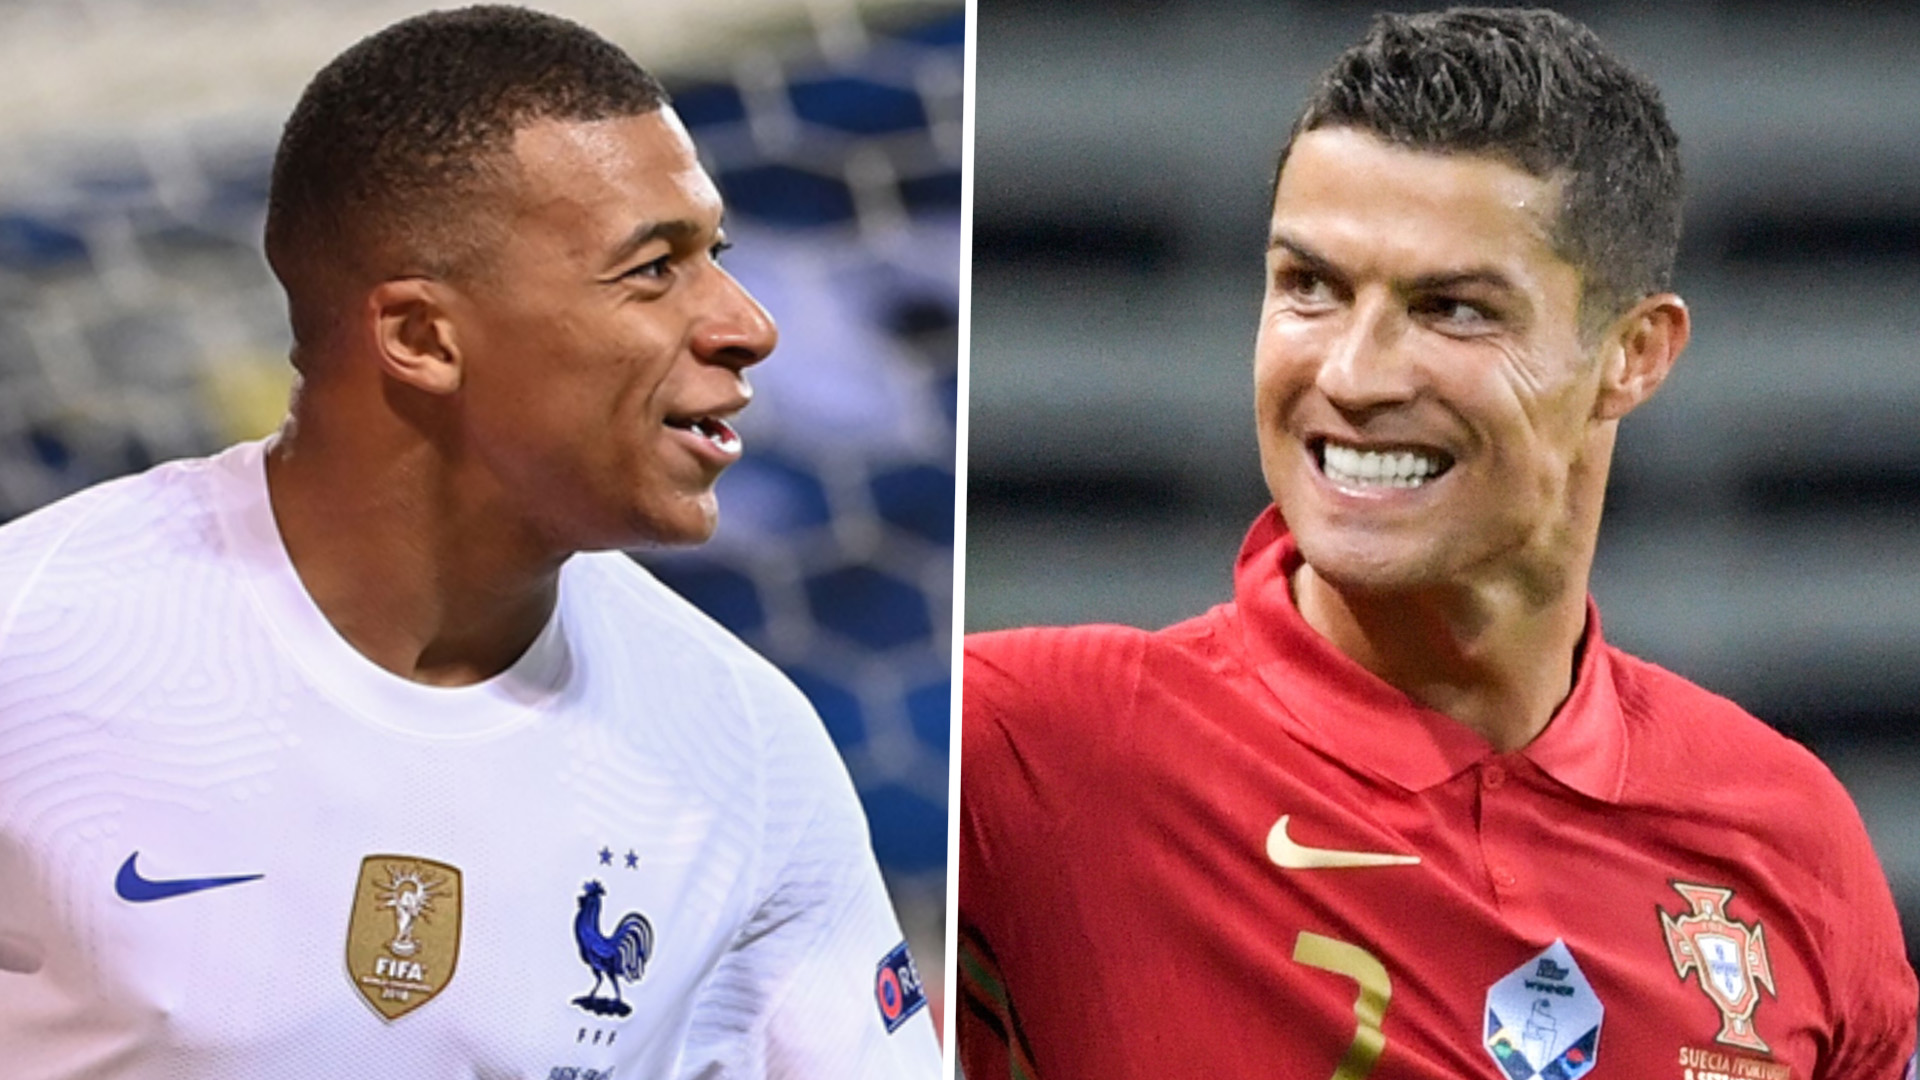 Ronaldo & Mbappe can both decide matches on their own, says France head coach Deschamps